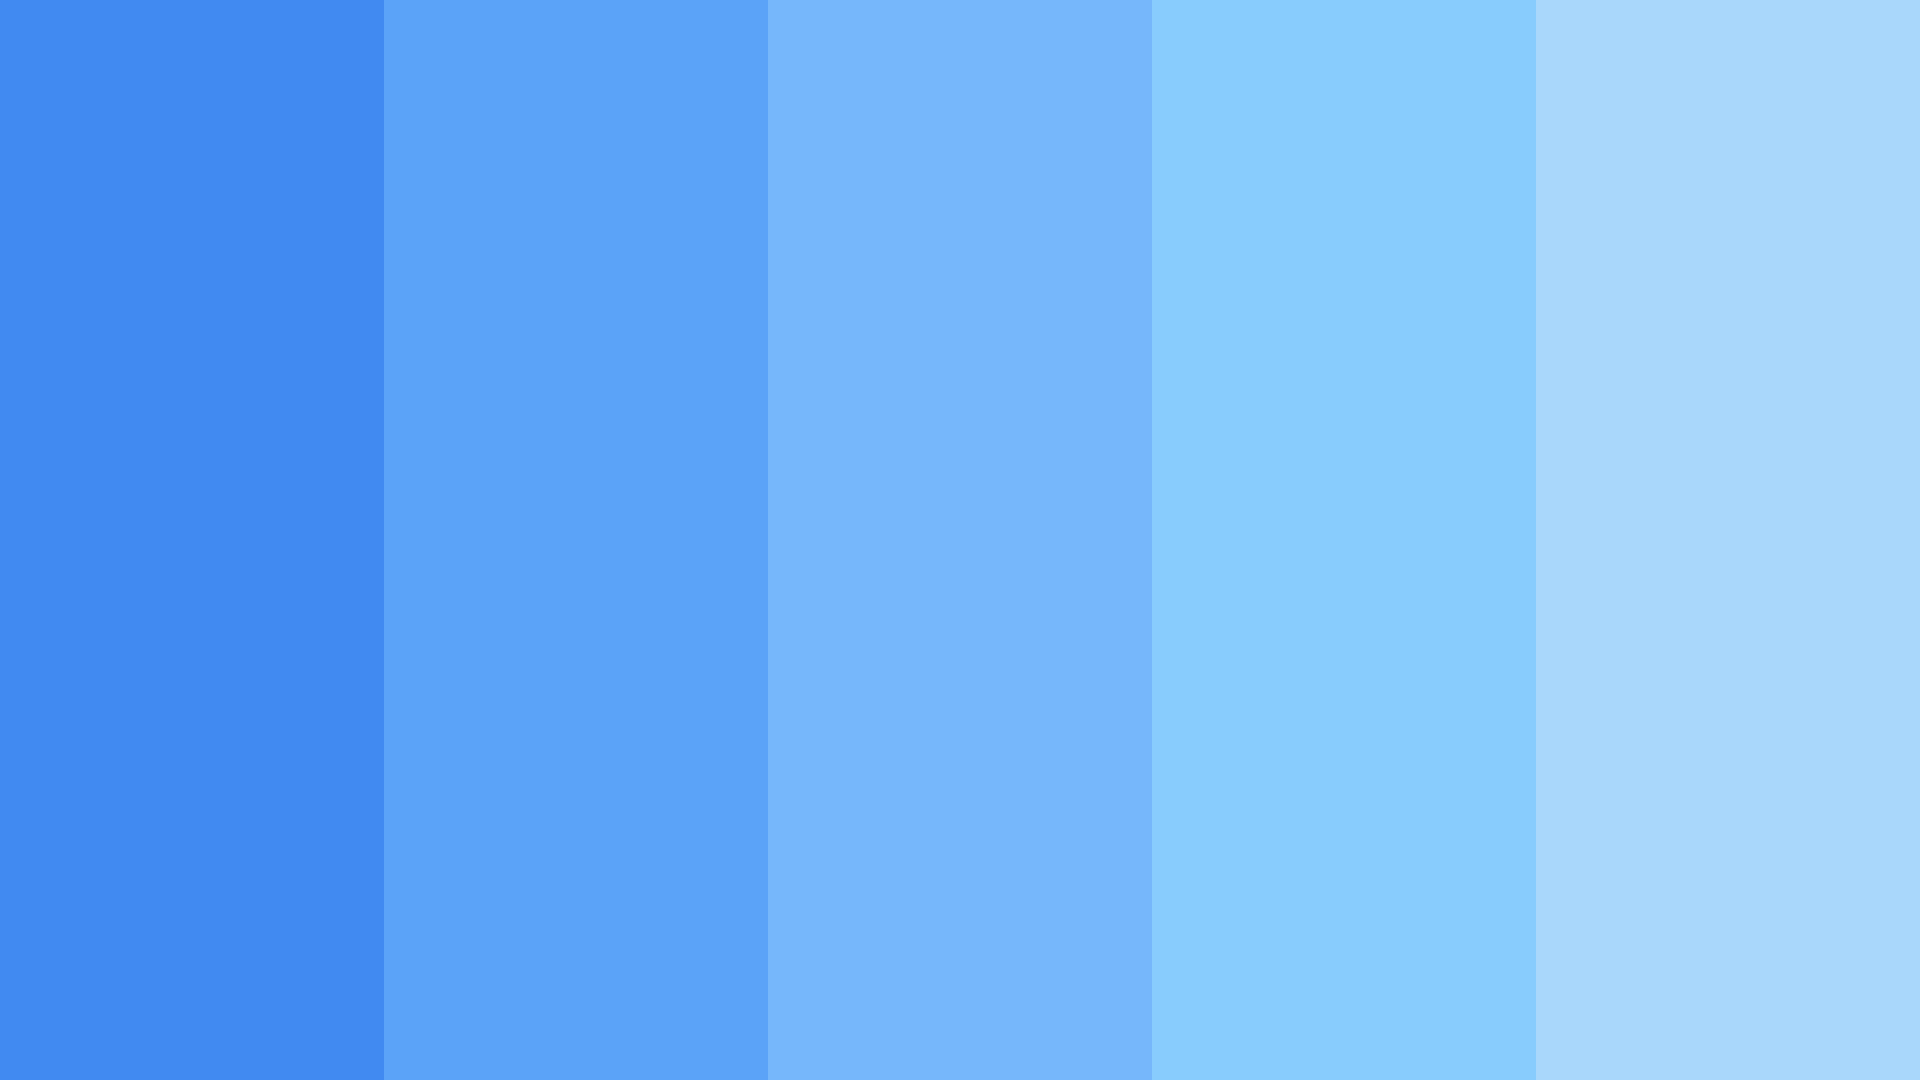 Sky Blue Monochromatic Color Palette